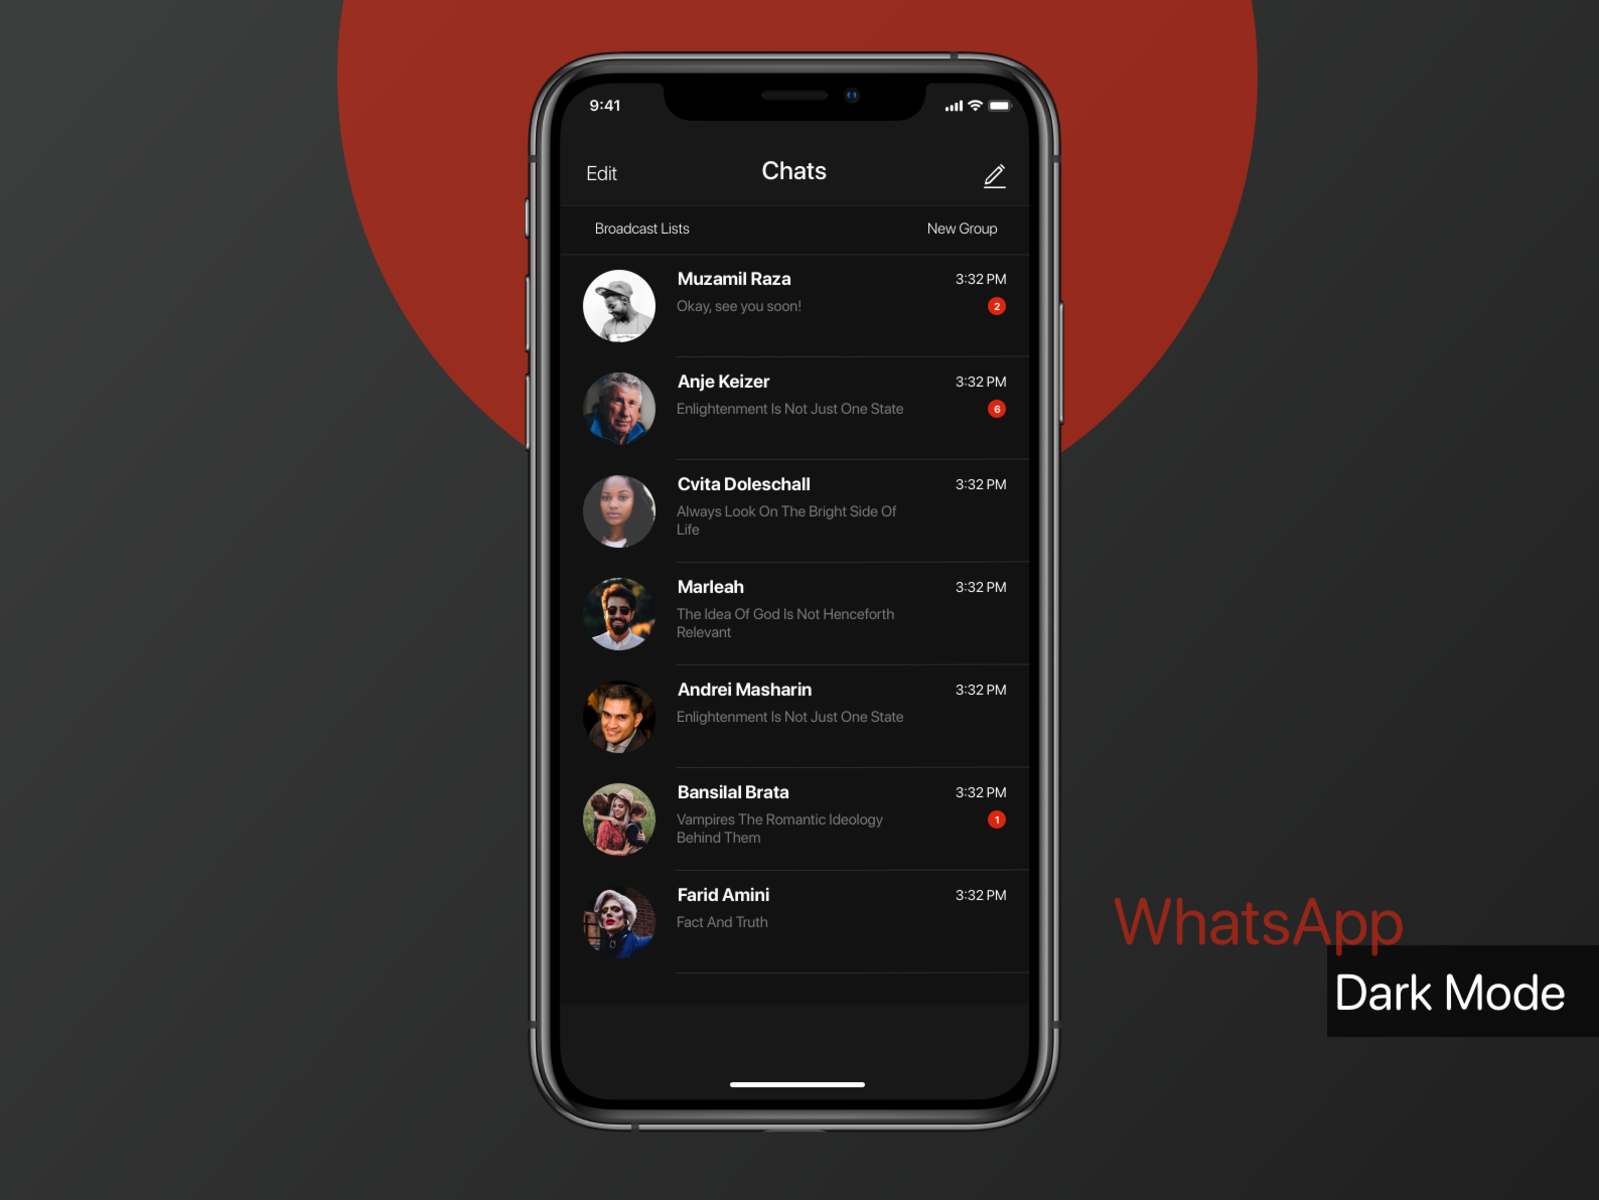 WhatsApp Officially Rolls Out Dark Mode For Android And iOS